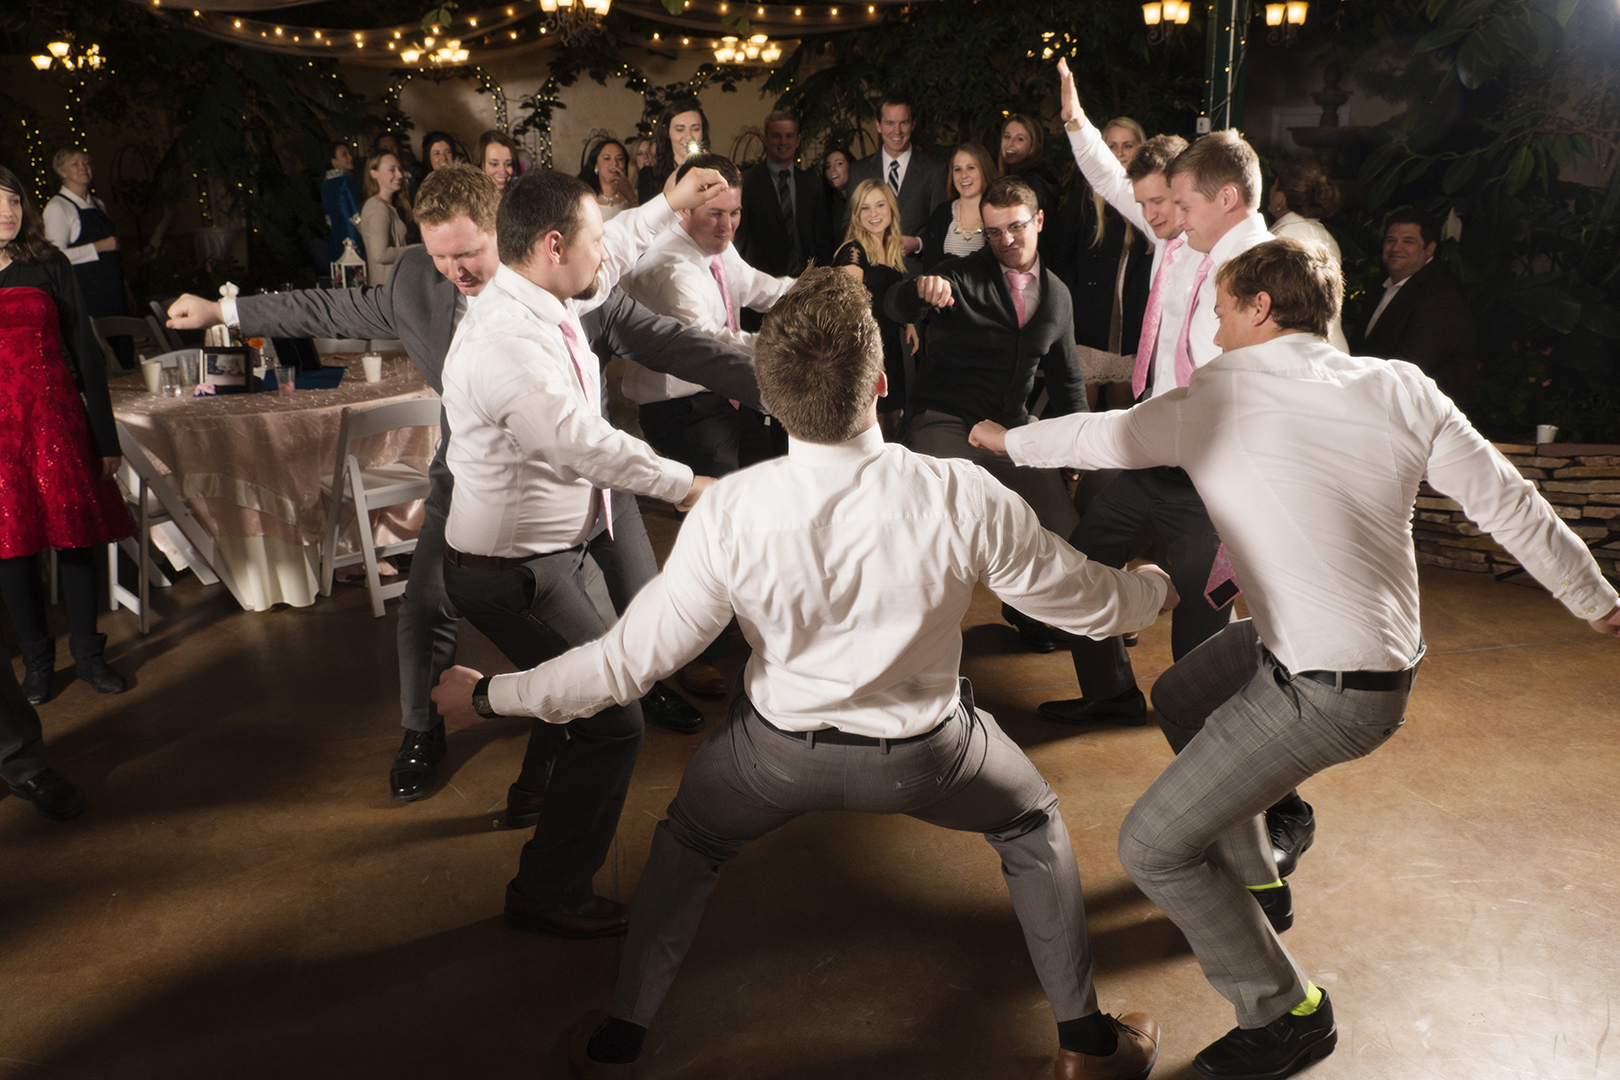 Groomsmen Dance at Wedding